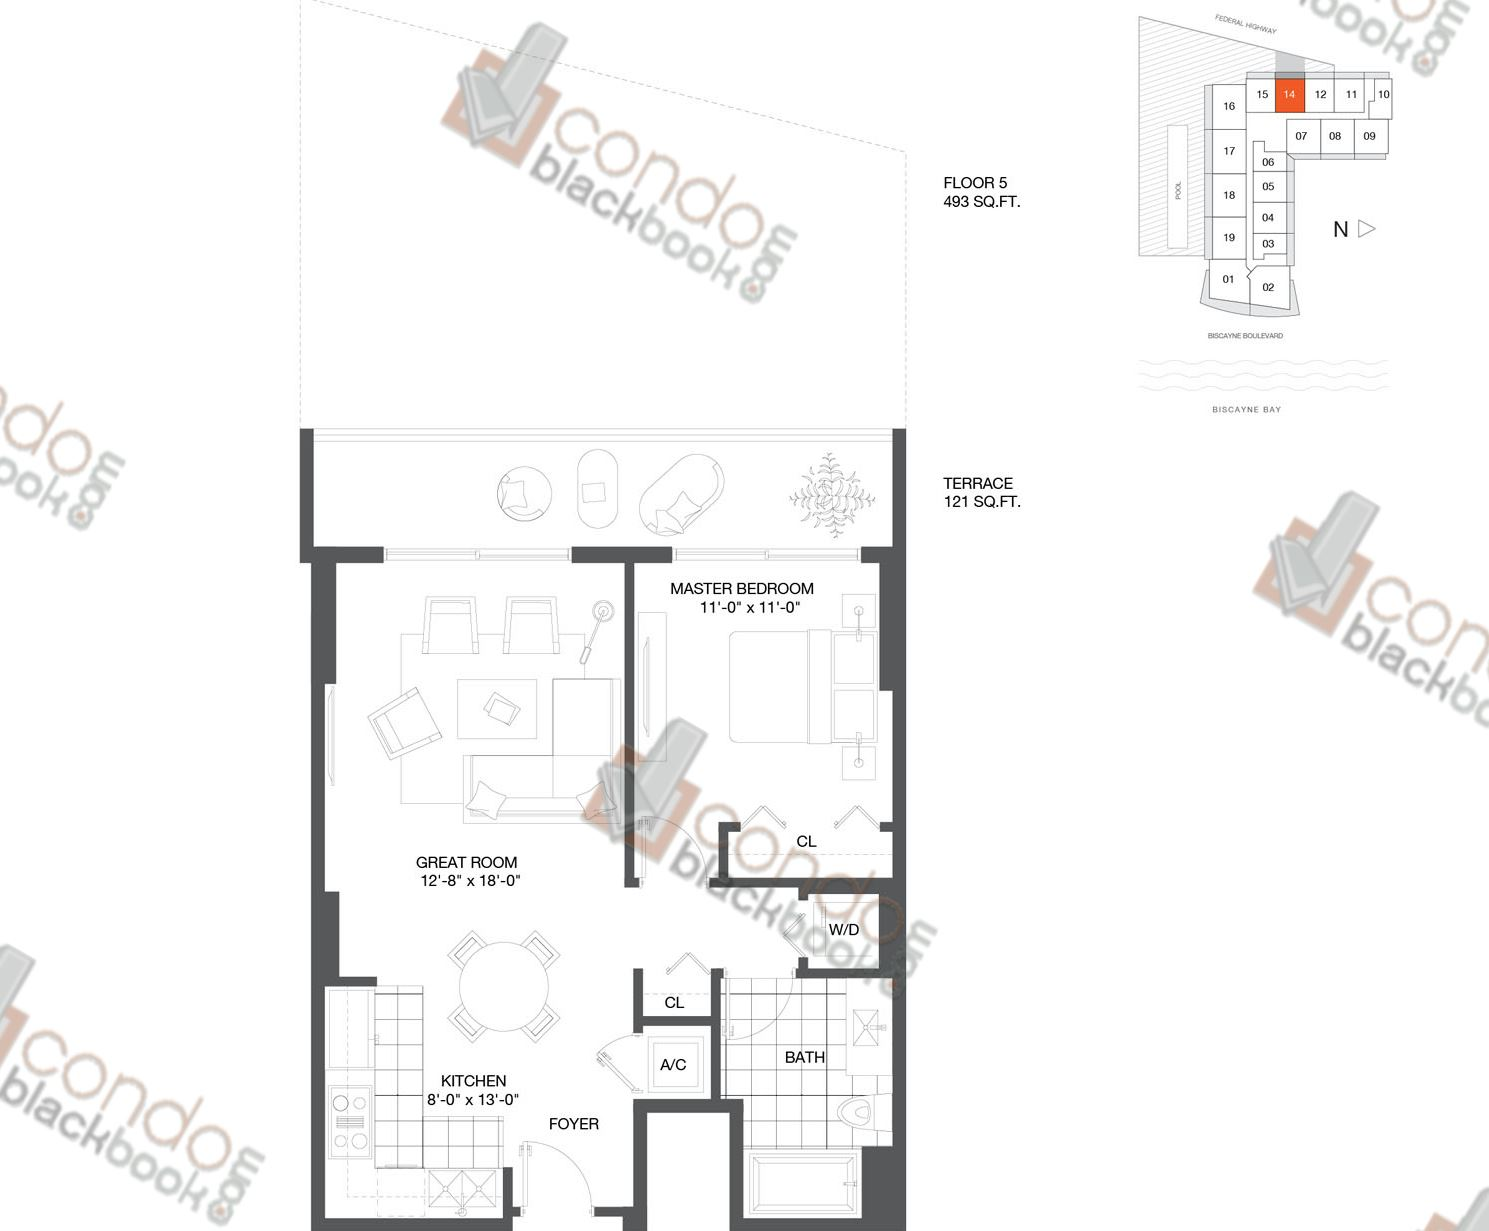 Floor plan for Baltus House Design District / Buena Vista Miami, model Residence 14, line 14, 1/1 bedrooms, 680 sq ft